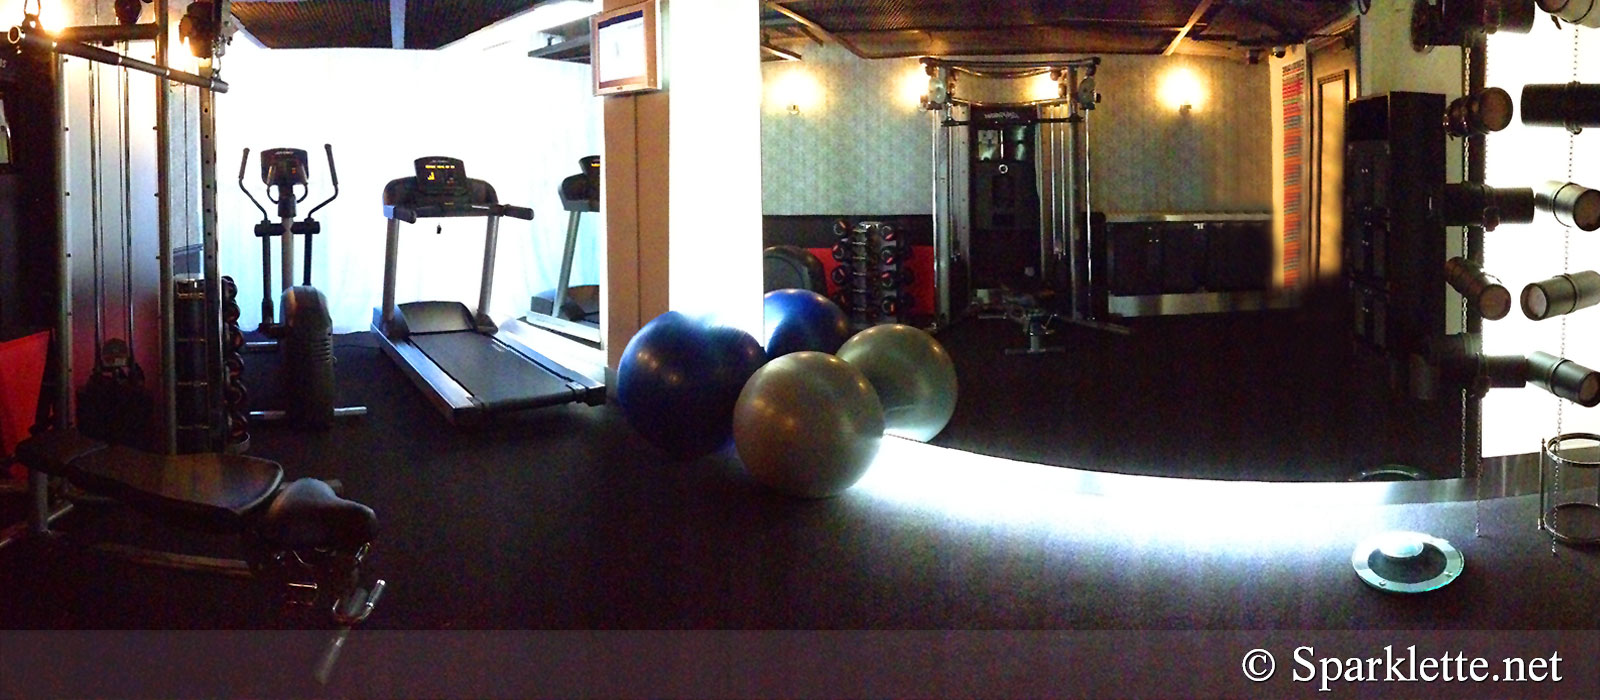 The Scarlet Hotel Fitness Centre